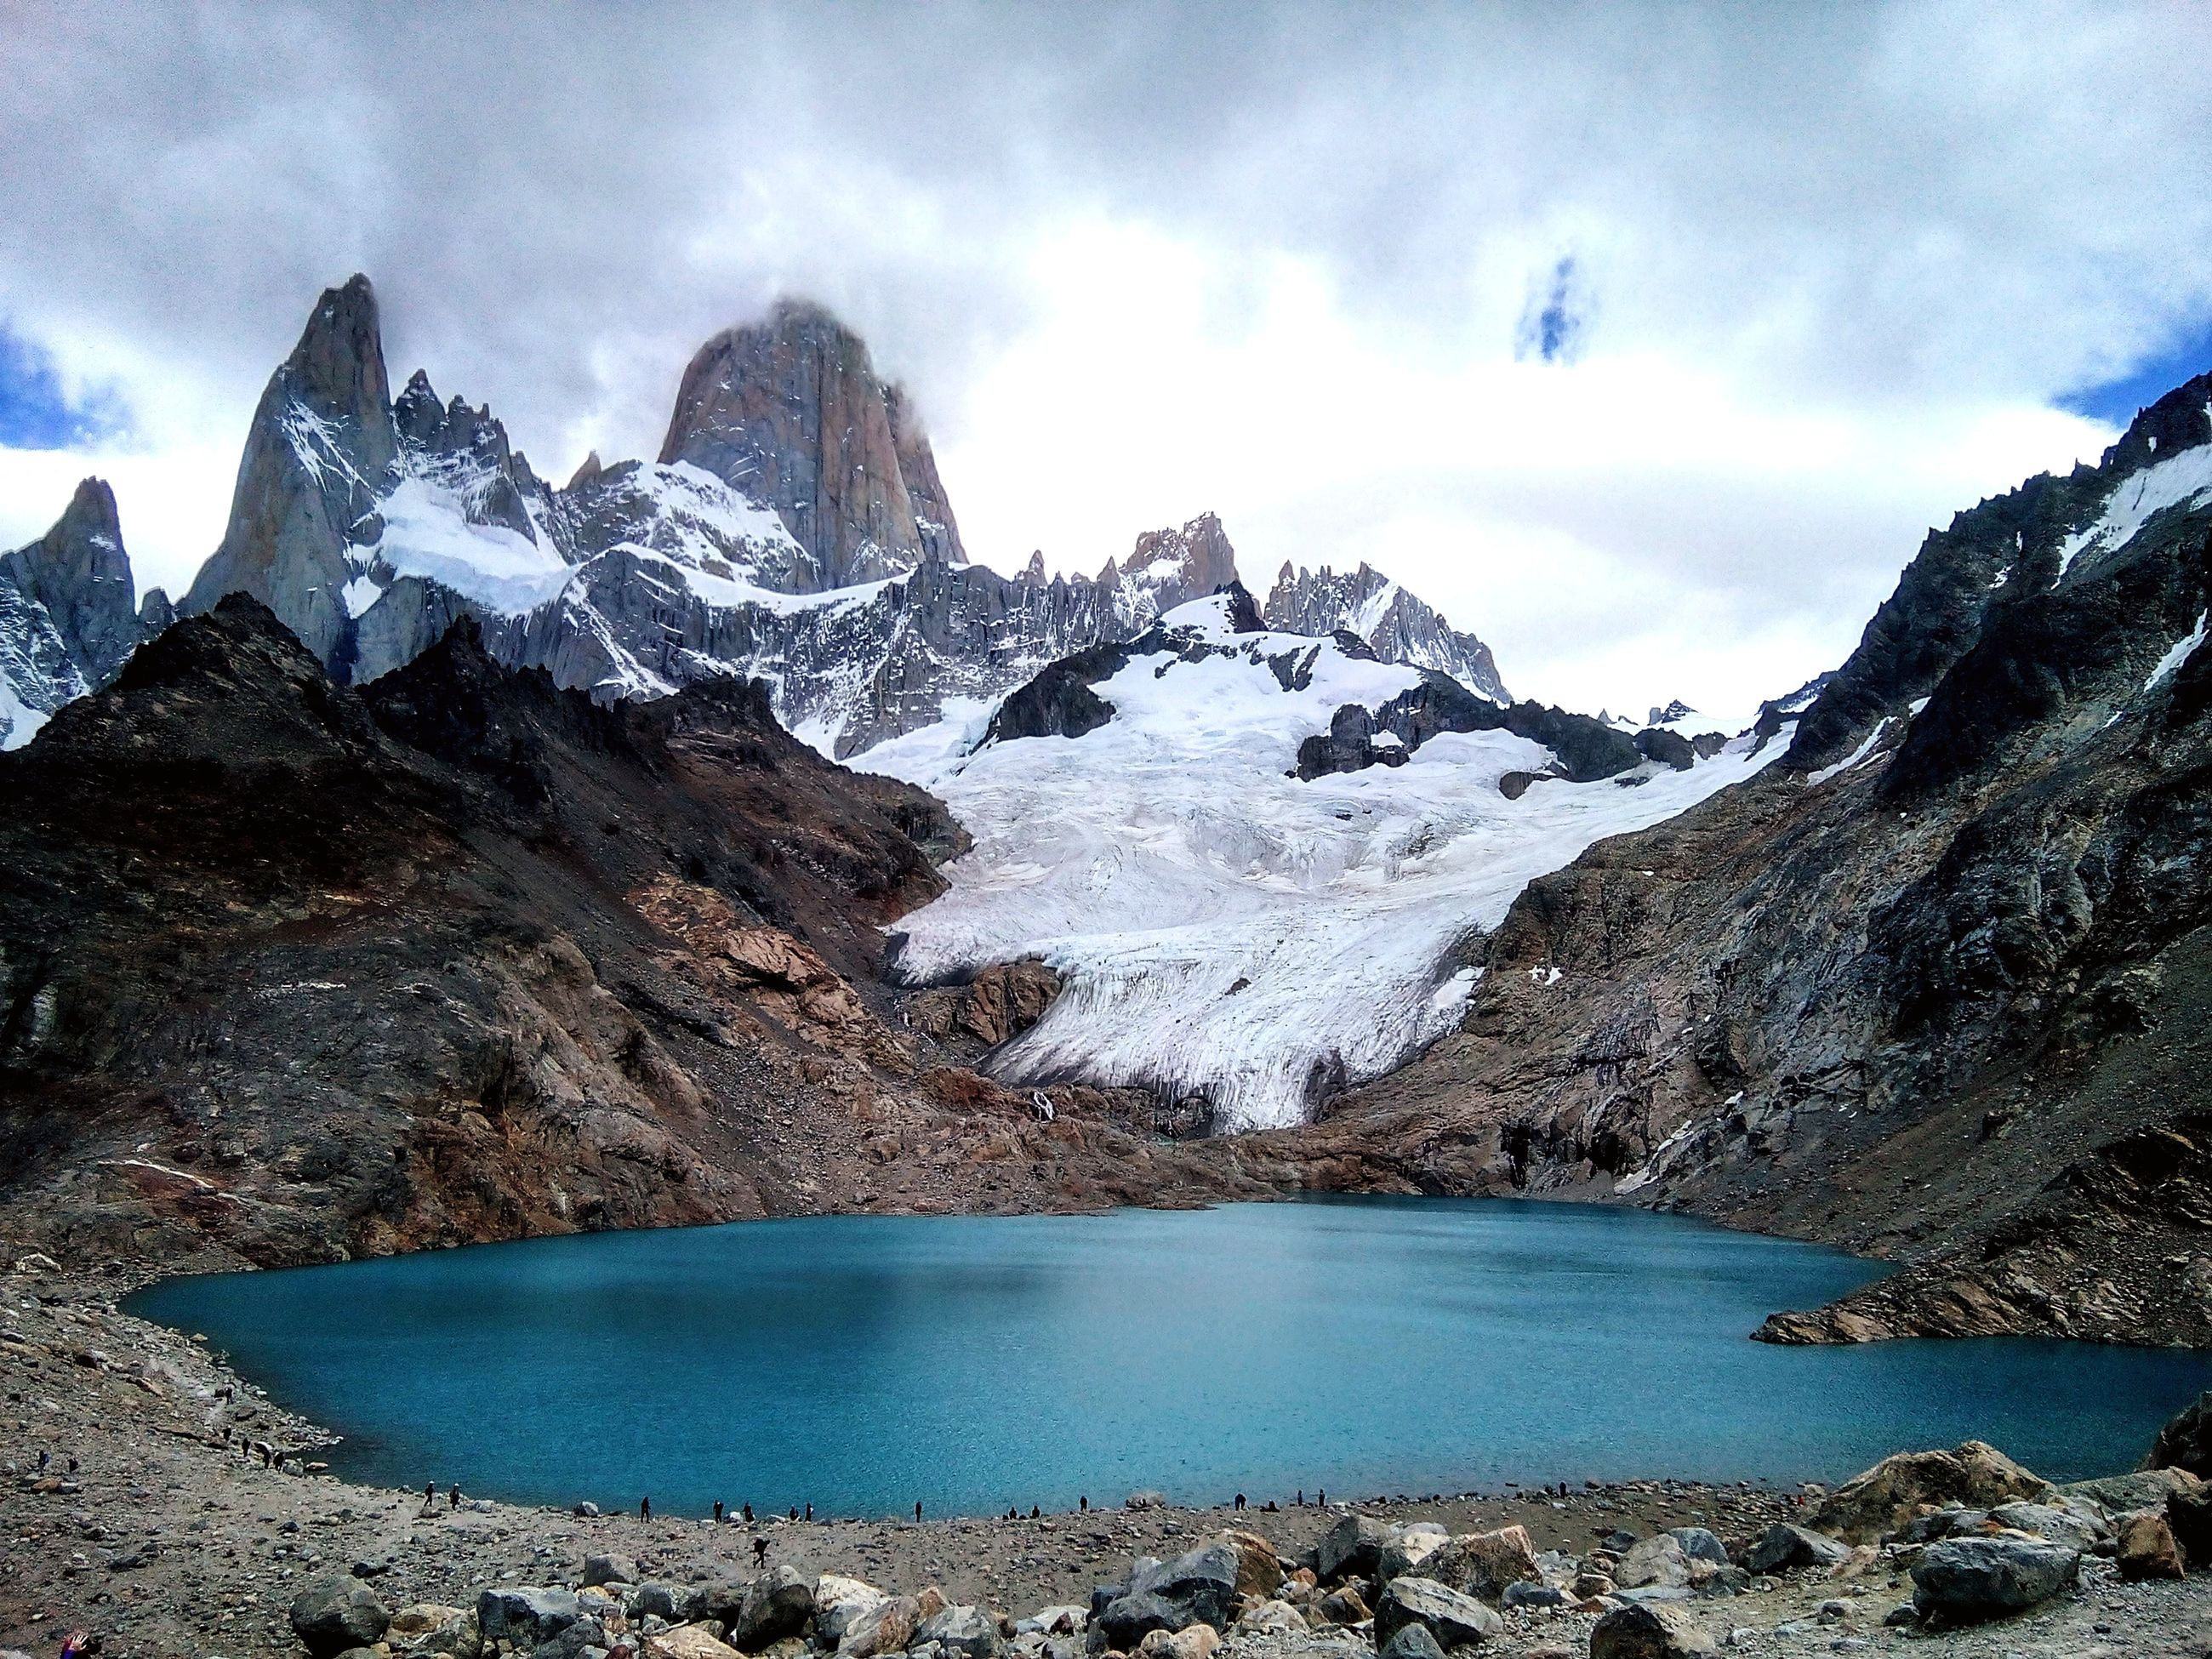 Scenic view of lake by snowcapped mountains against cloudy sky